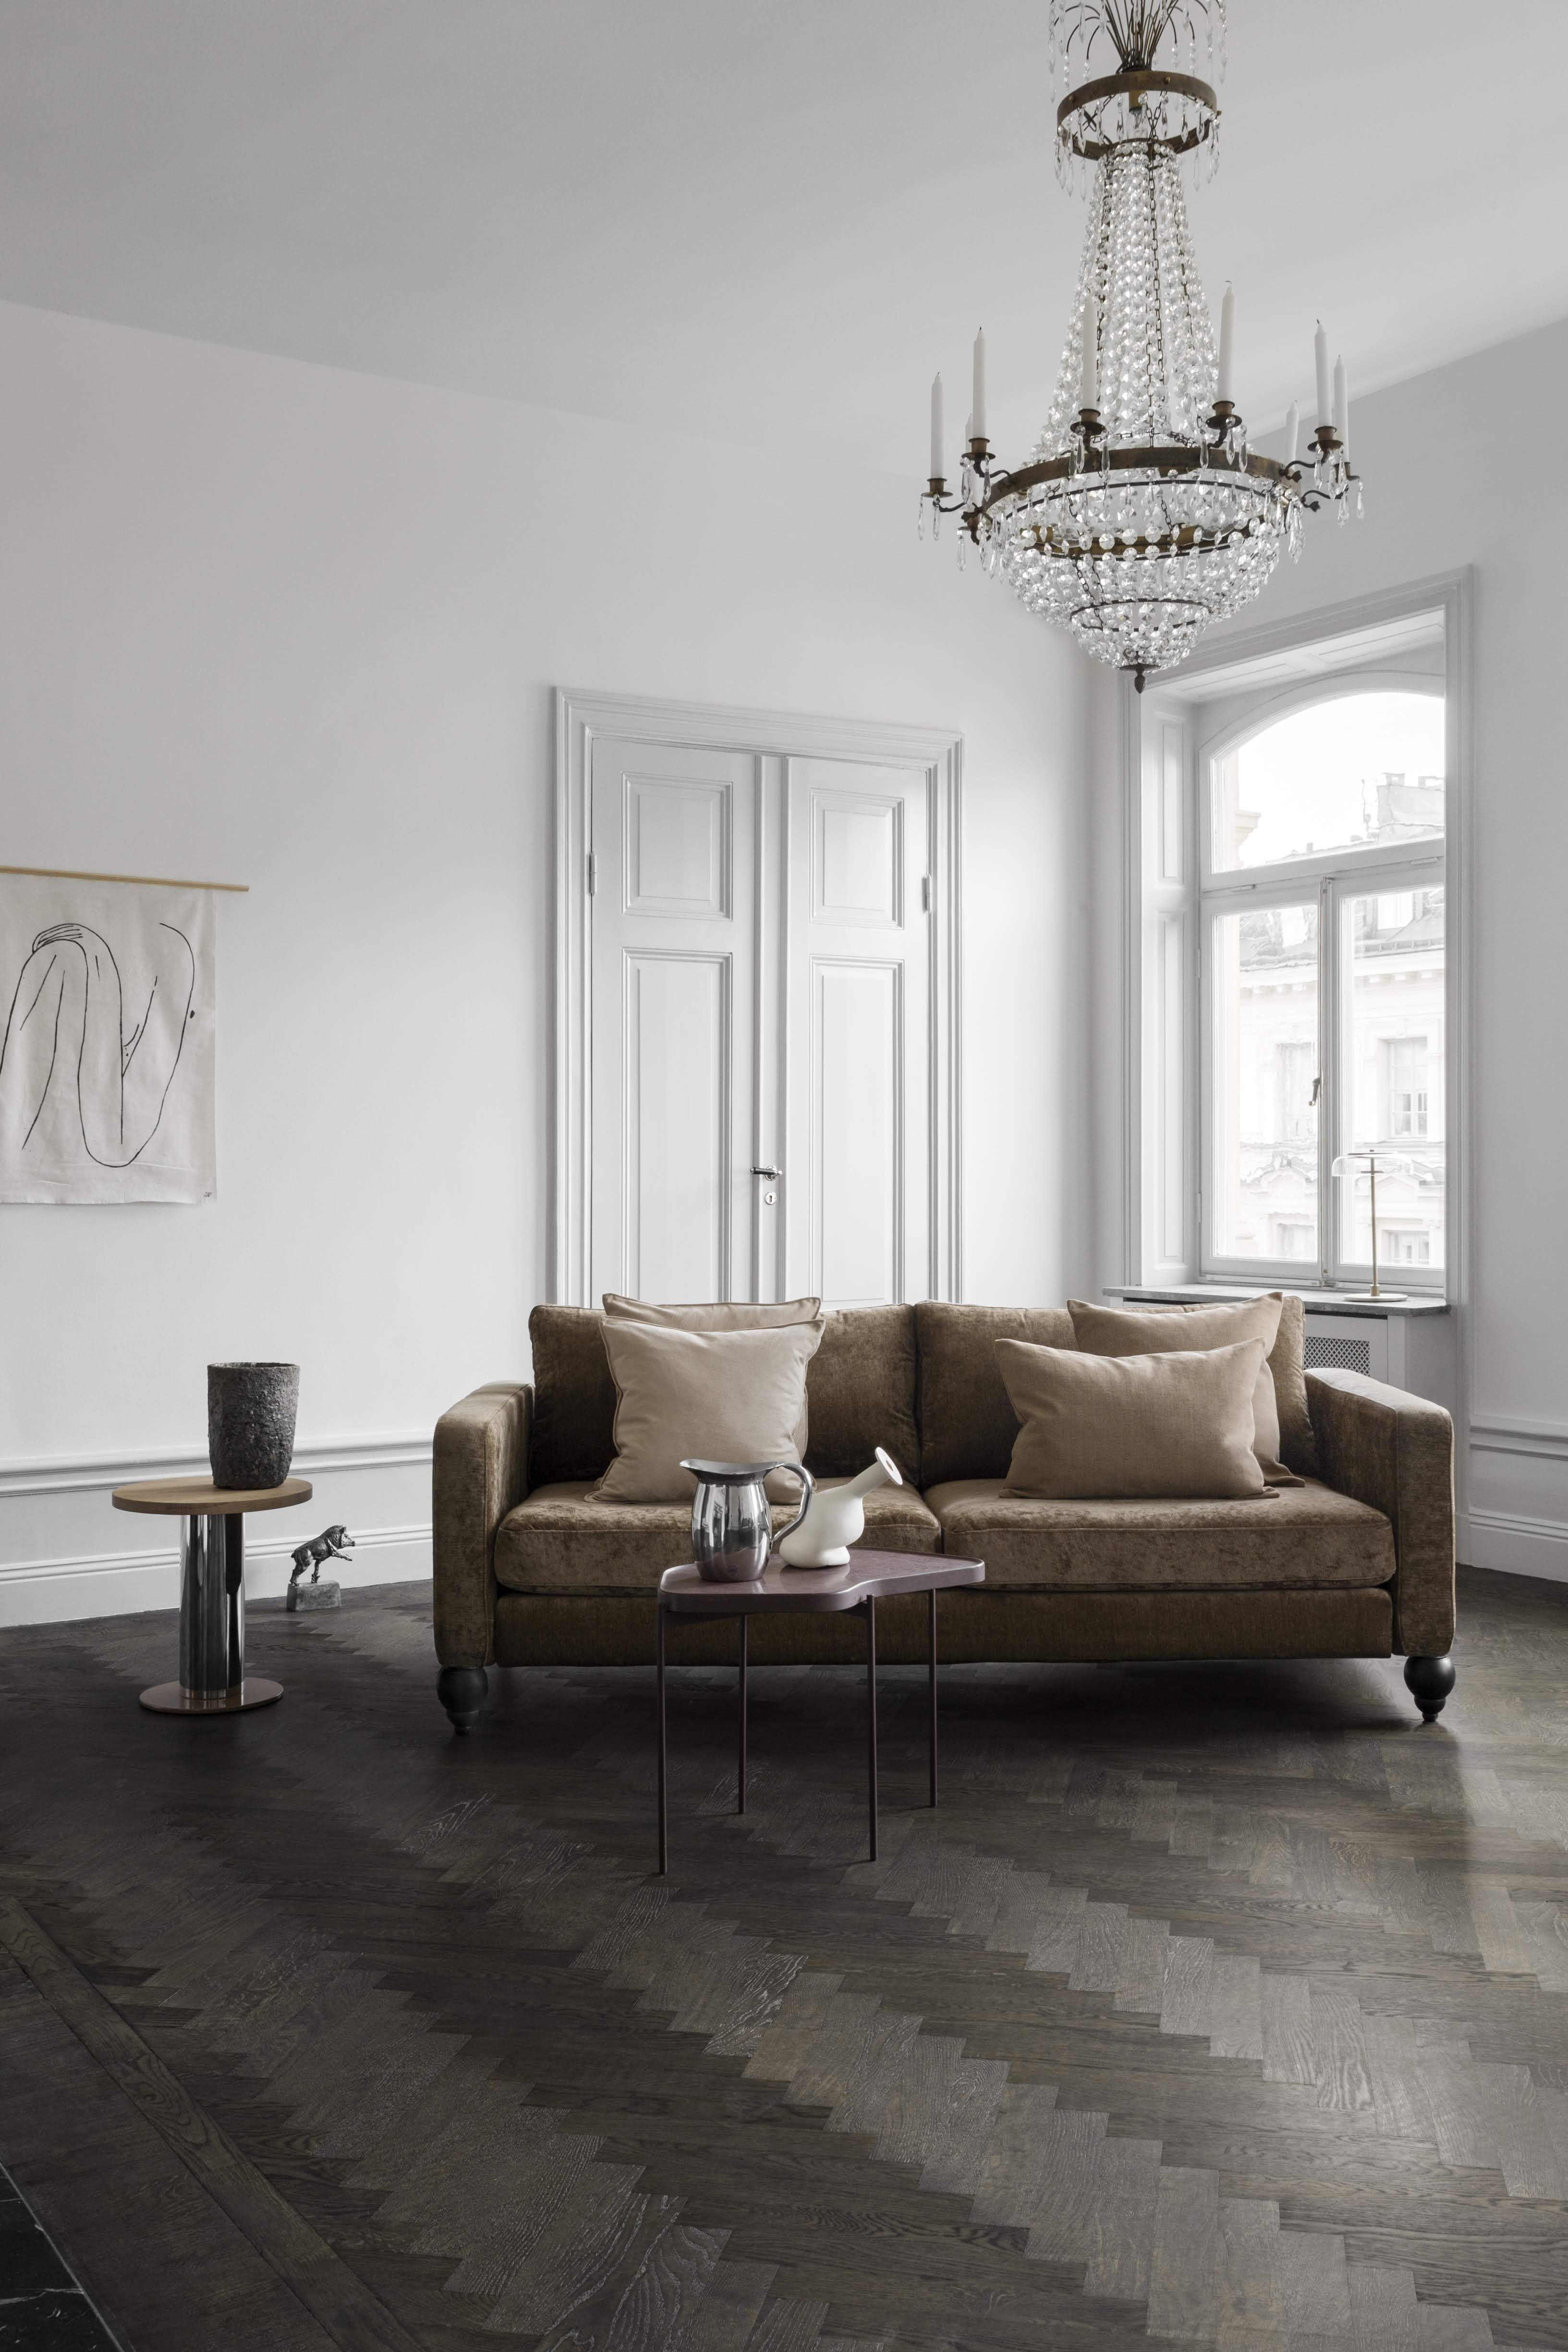 Warm Shades Of Acorn Chestnut And Nougat Aren T Going Away Anytime Soon We Love How It Pops Against This Classic Crisp Wh Furniture Legs Furniture Ikea Sofa